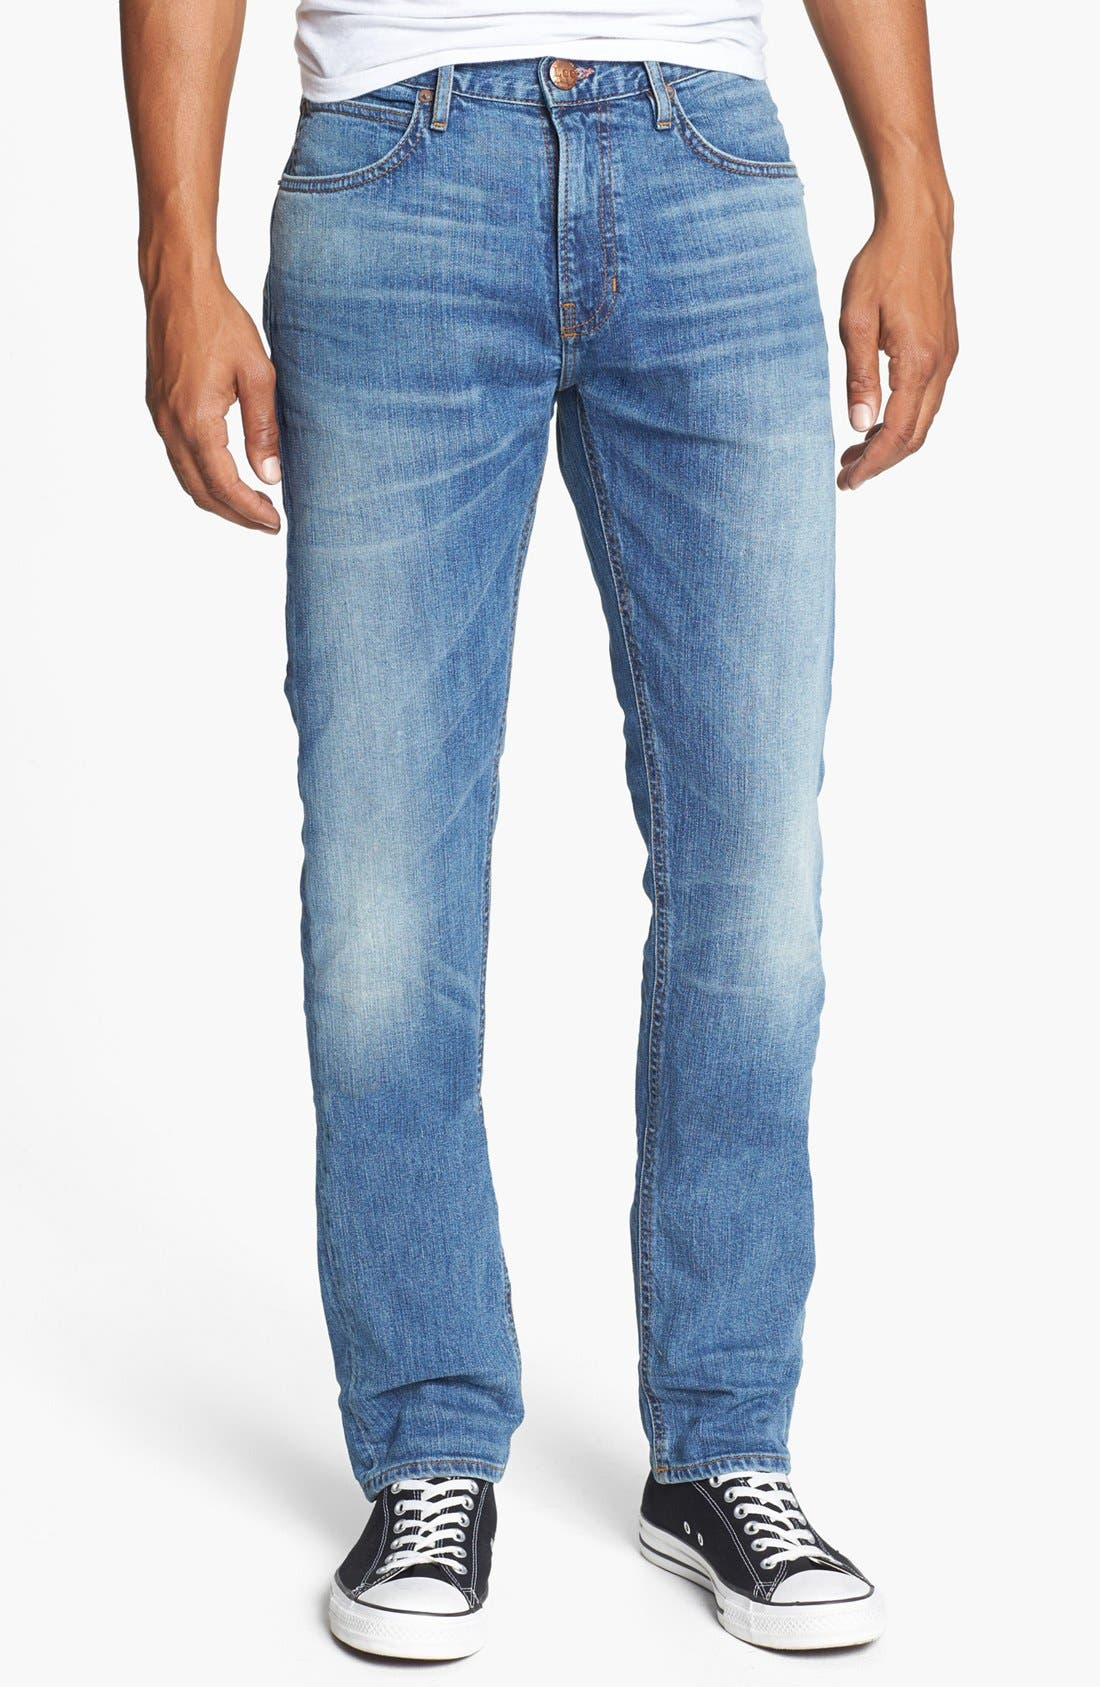 Alternate Image 1 Selected - Lee 101 USA Lean Straight Leg Jeans (Dry Dust)